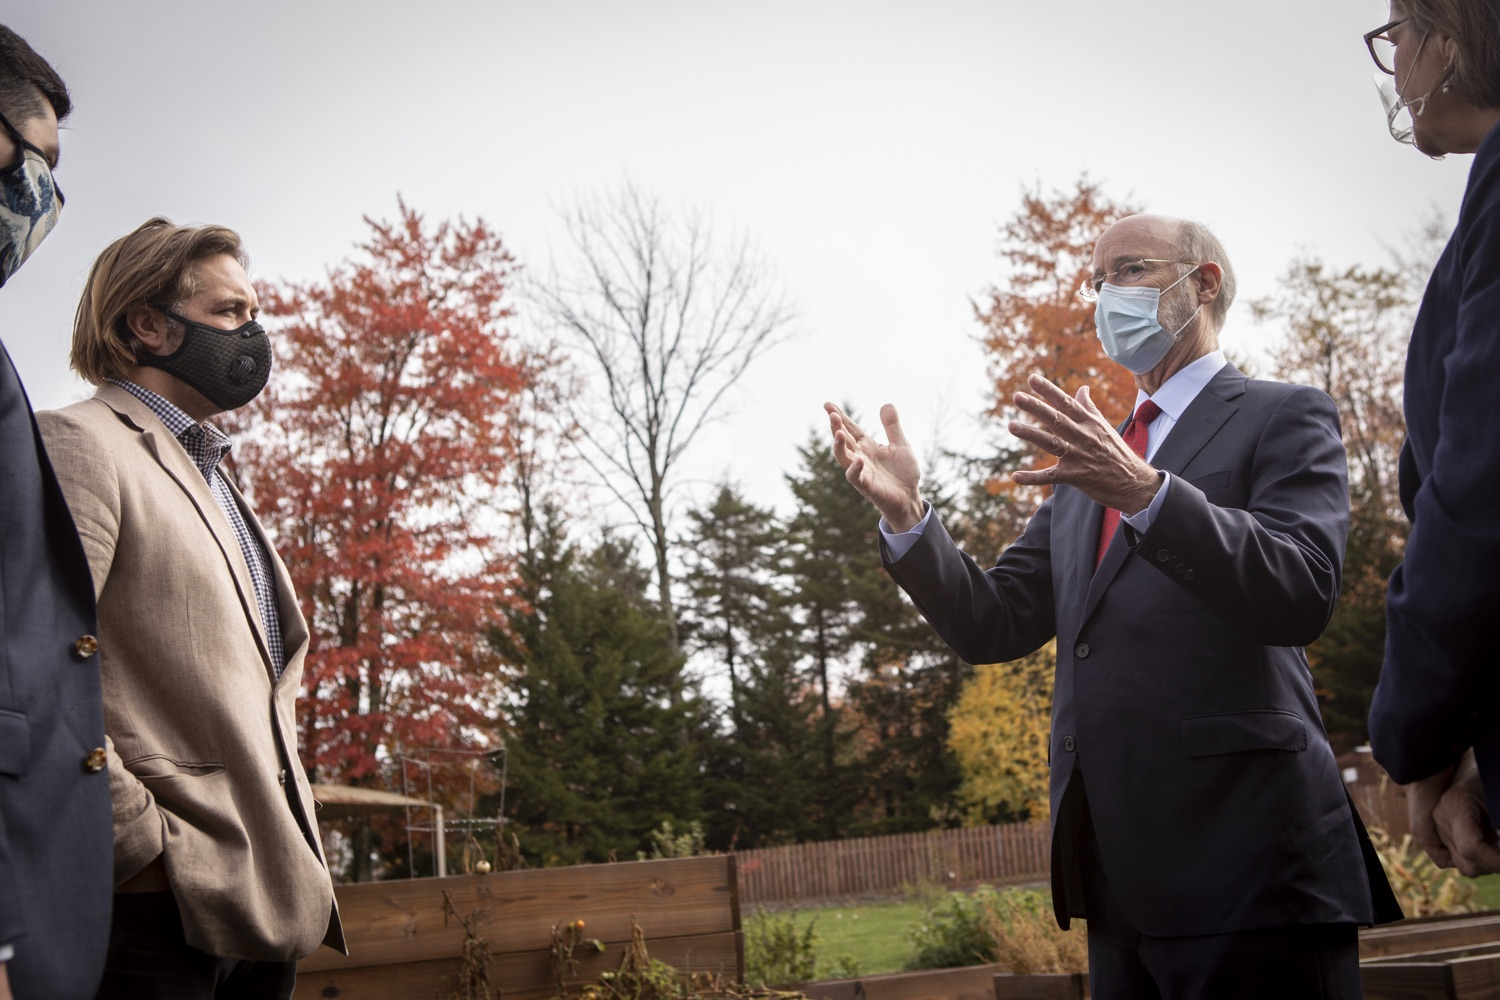 "<a href=""https://filesource.wostreaming.net/commonwealthofpa/photo/18310_gov_adult_use_cannabis_dz_012.jpg"" target=""_blank"">⇣ Download Photo<br></a>Governor Tom Wolf touring The Mountain Center with Rep. Maureen Madden and Eric Titus White. Governor Tom Wolf visited The Mountain Center in Tobyhanna, Monroe County today to talk about the economic growth potential and restorative justice benefits of legalizing adult-use cannabis, something the state General Assembly has not yet done despite multiple requests from the governor and Lieutenant Governor John Fetterman to take up legislation this fall.  Tobyhanna, PA  October 13, 2020"